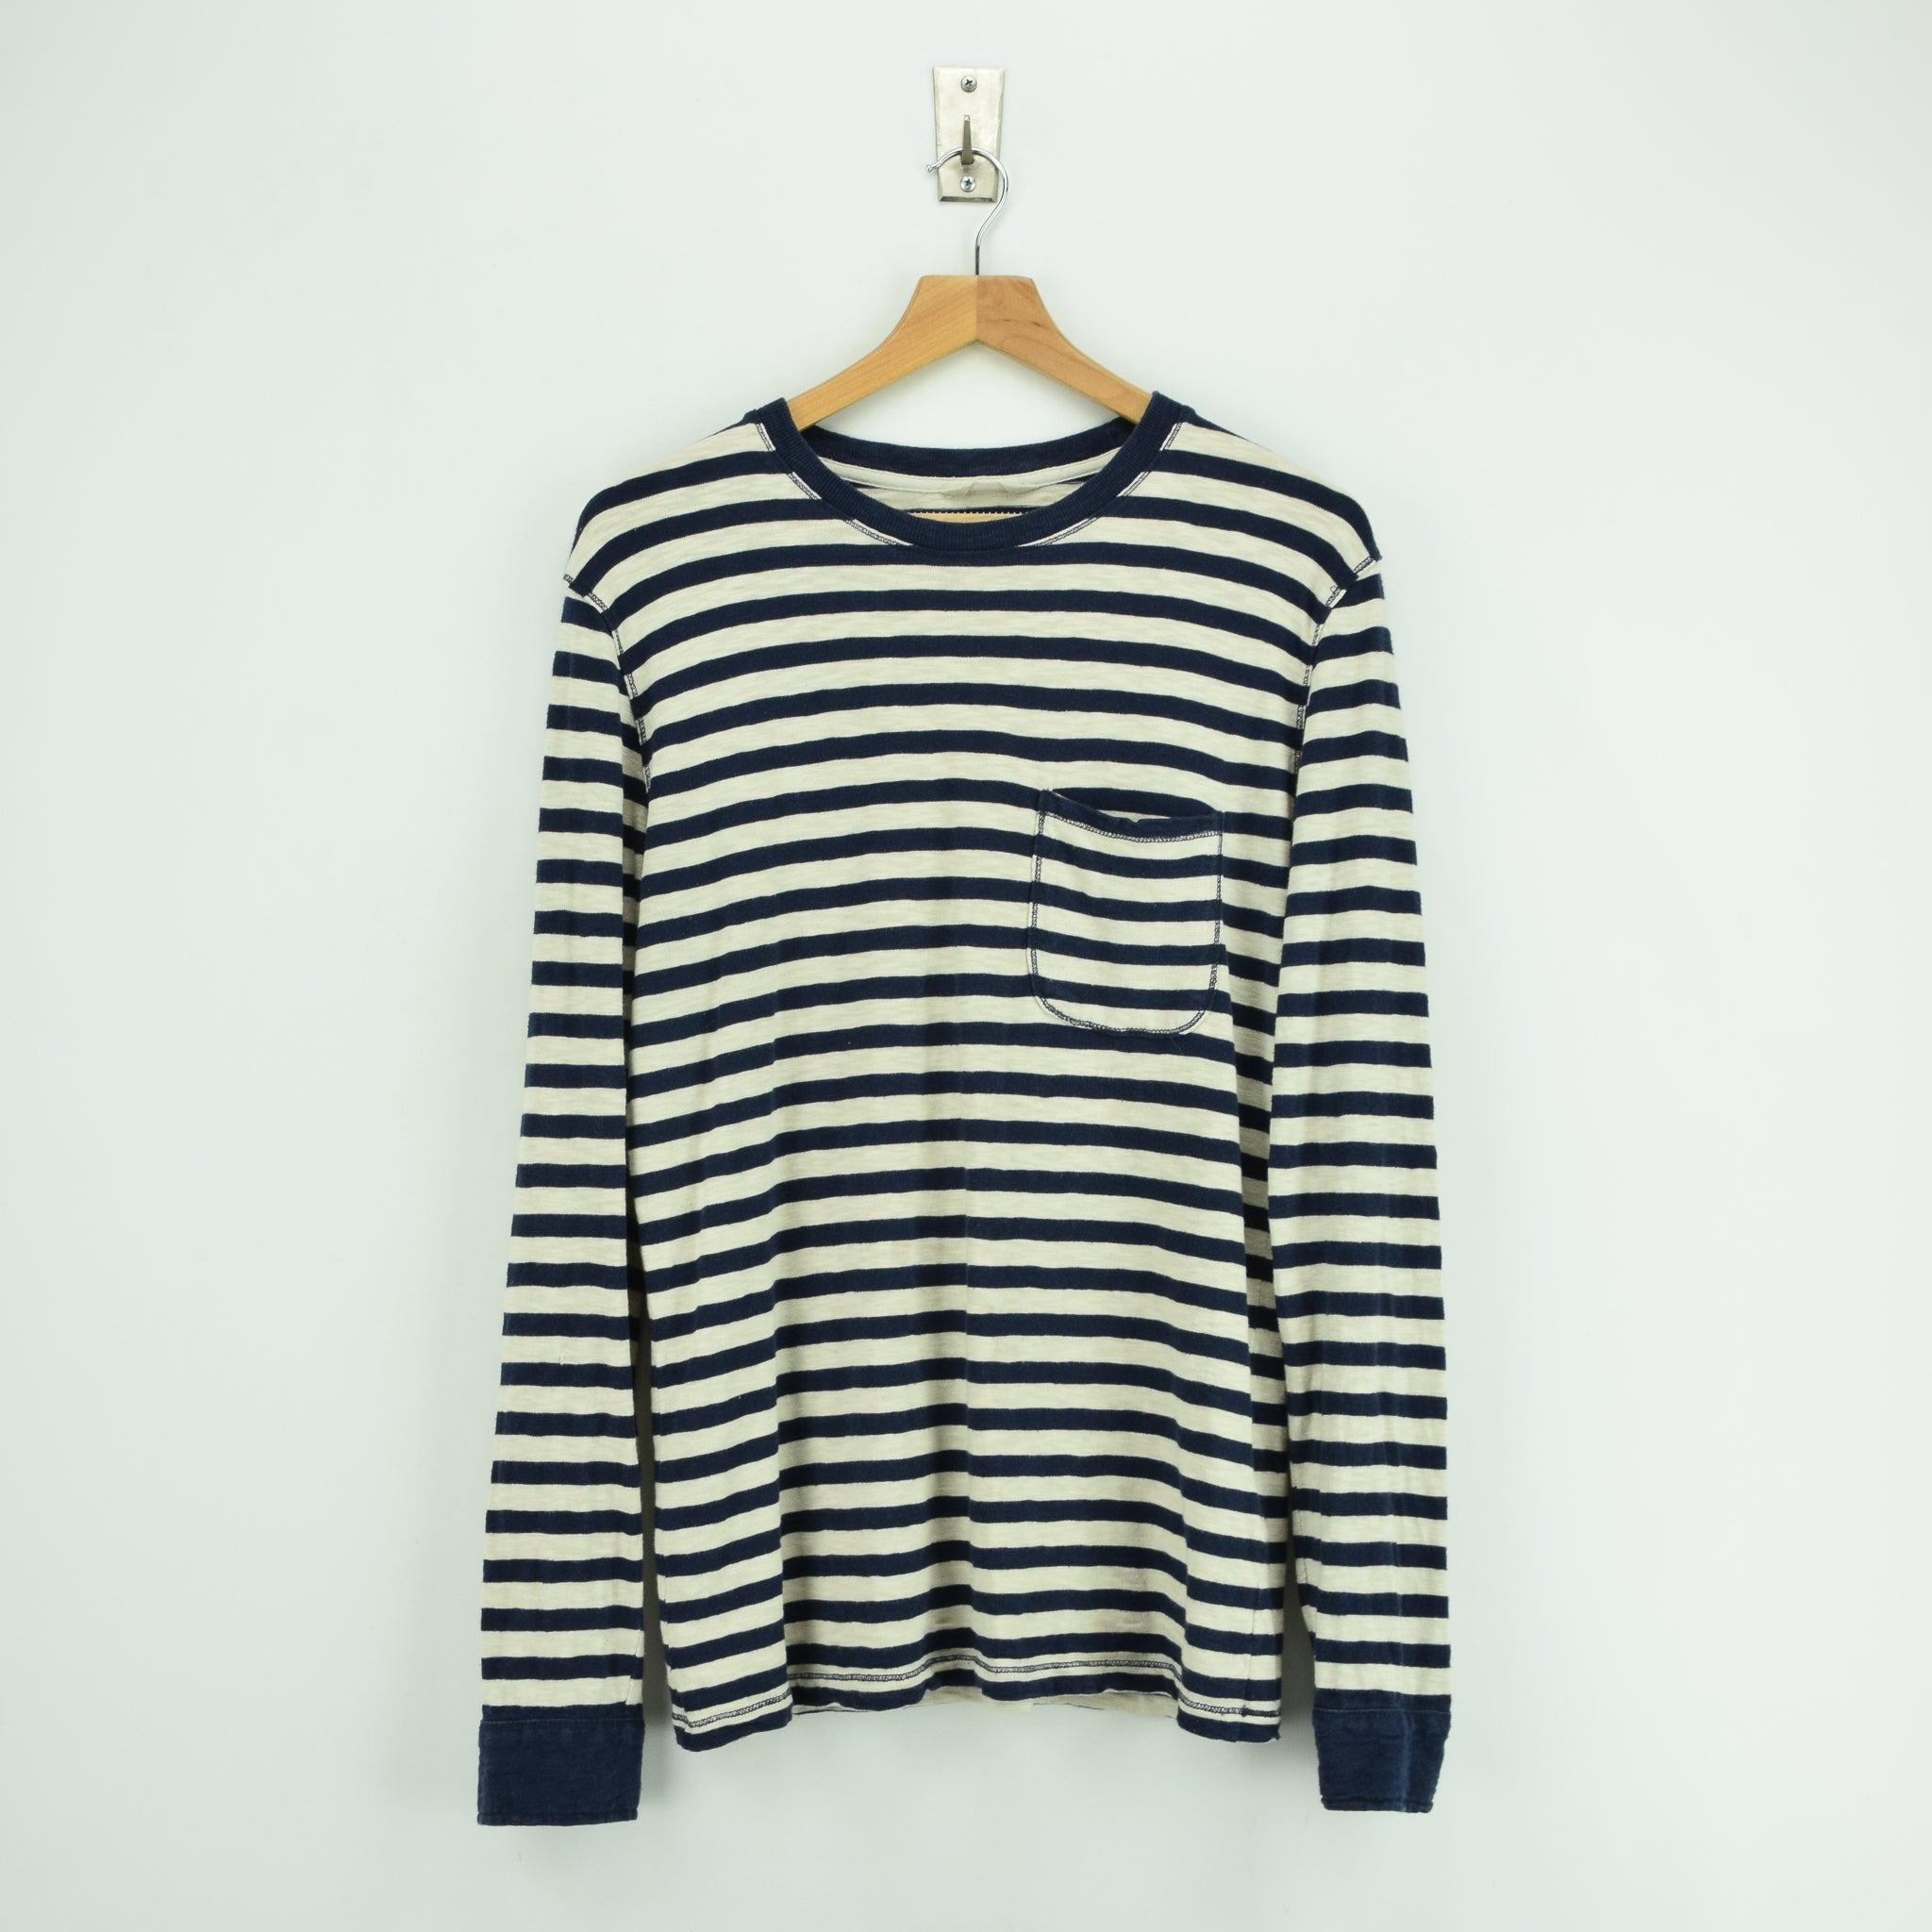 Vintage NN 07 Breton Striped Sailor's Long Sleeved Cotton T-shirt Top S / M front